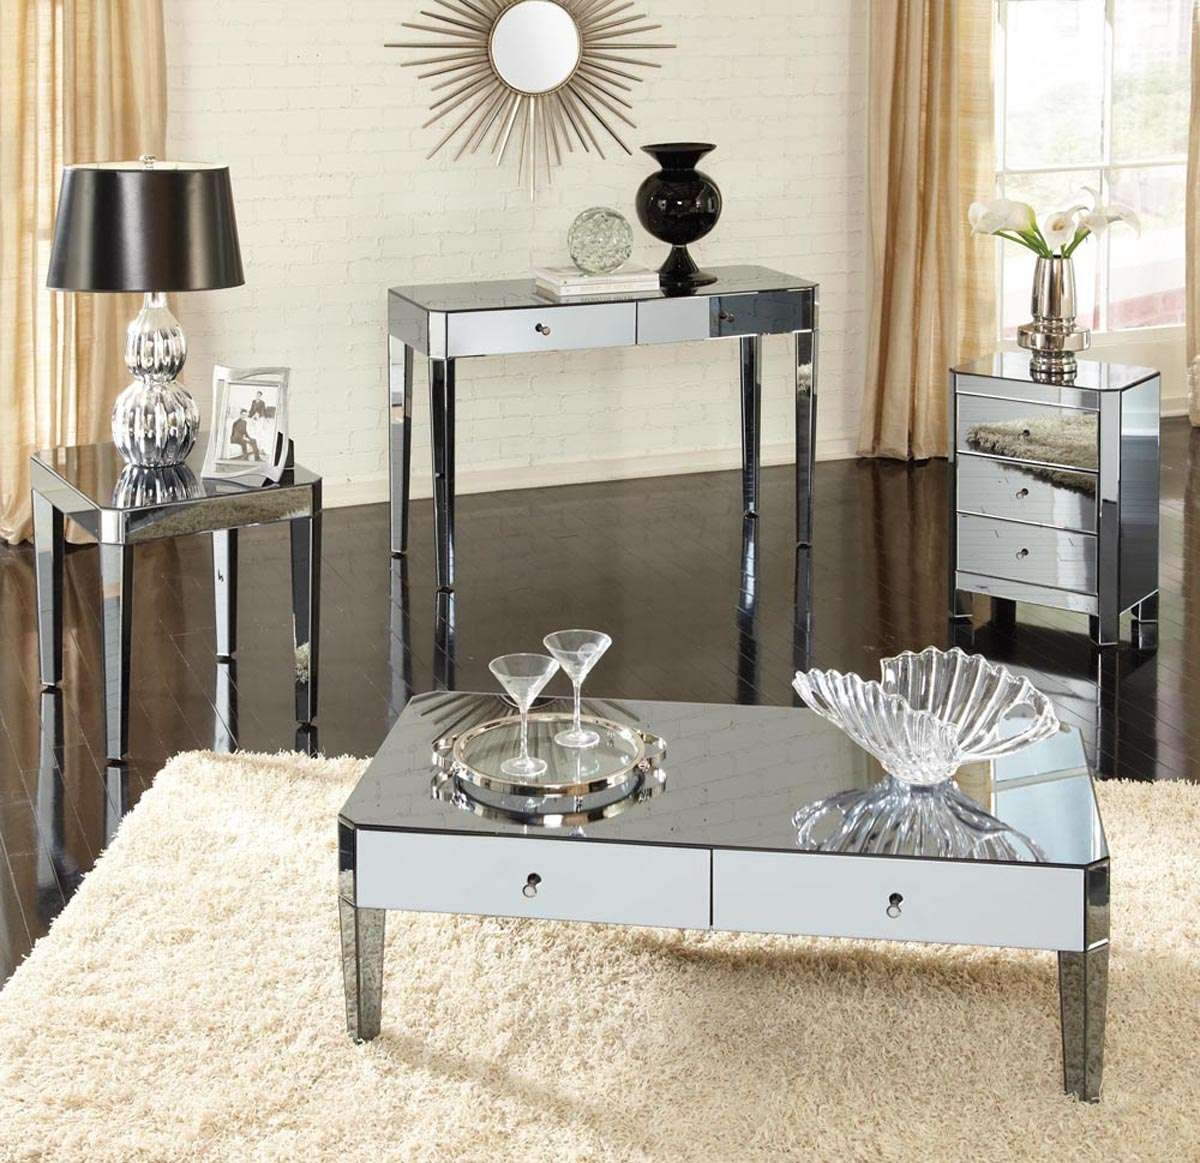 Fashionable Mirrored Coffee Tables With Coffee Table, Mirrored Coffee Table Set Mirrored Coffee Table Tray (View 16 of 20)